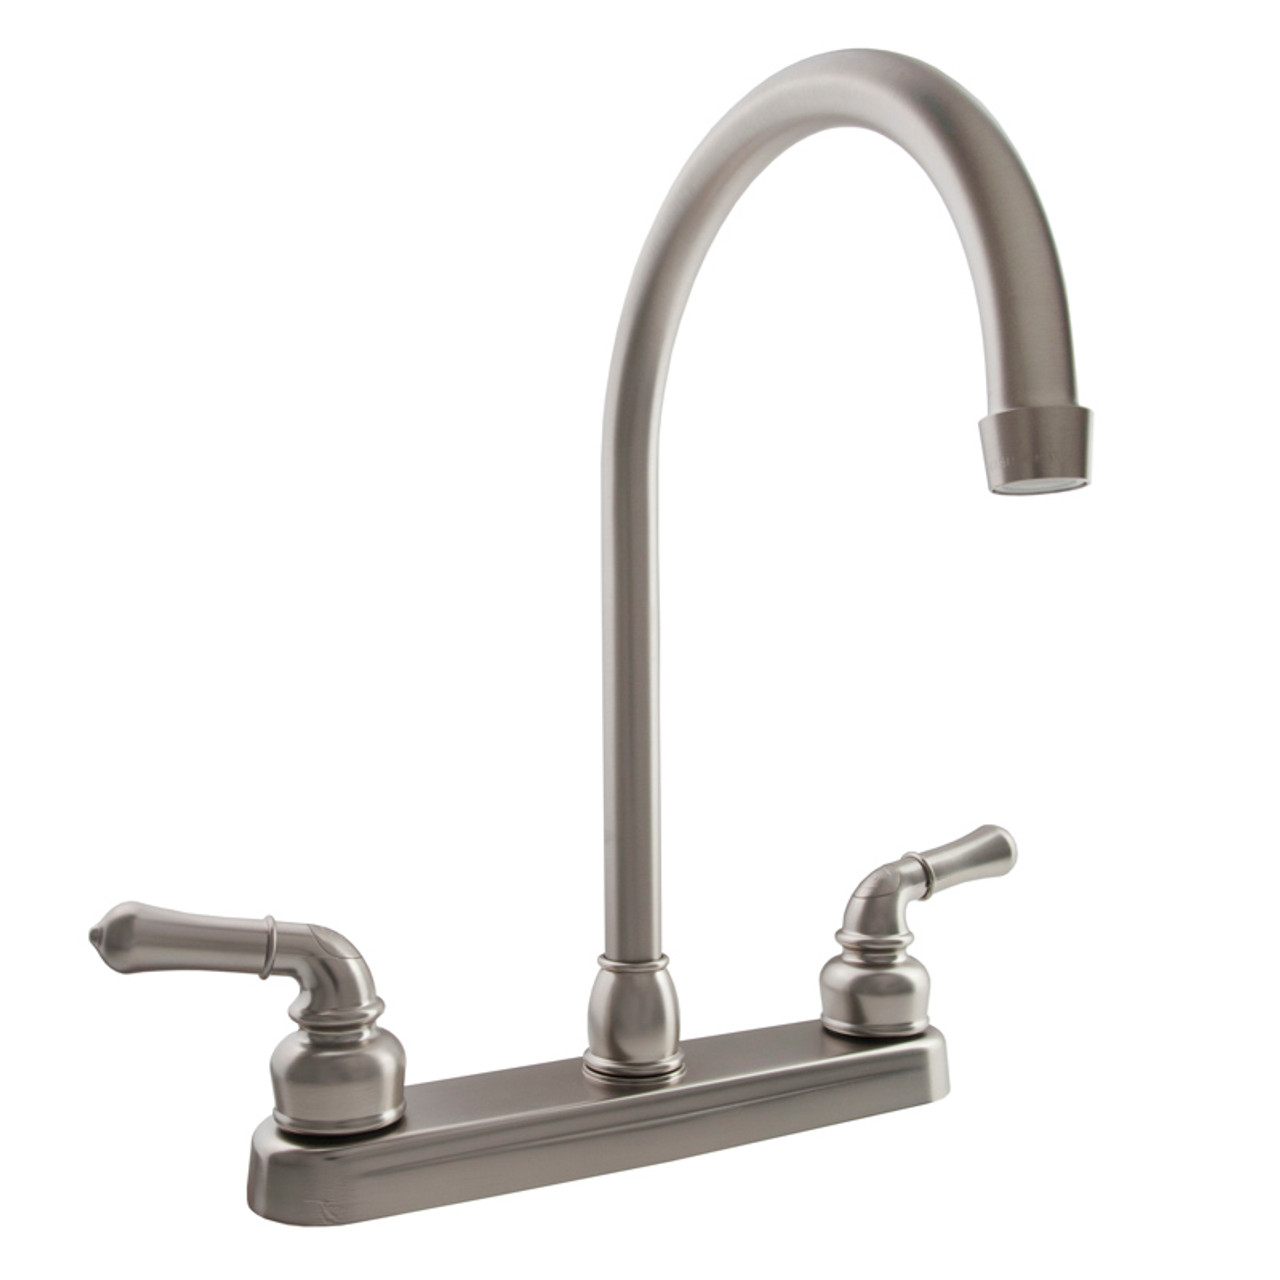 Shop For J-Spout RV Kitchen Faucets| Durafaucet.com